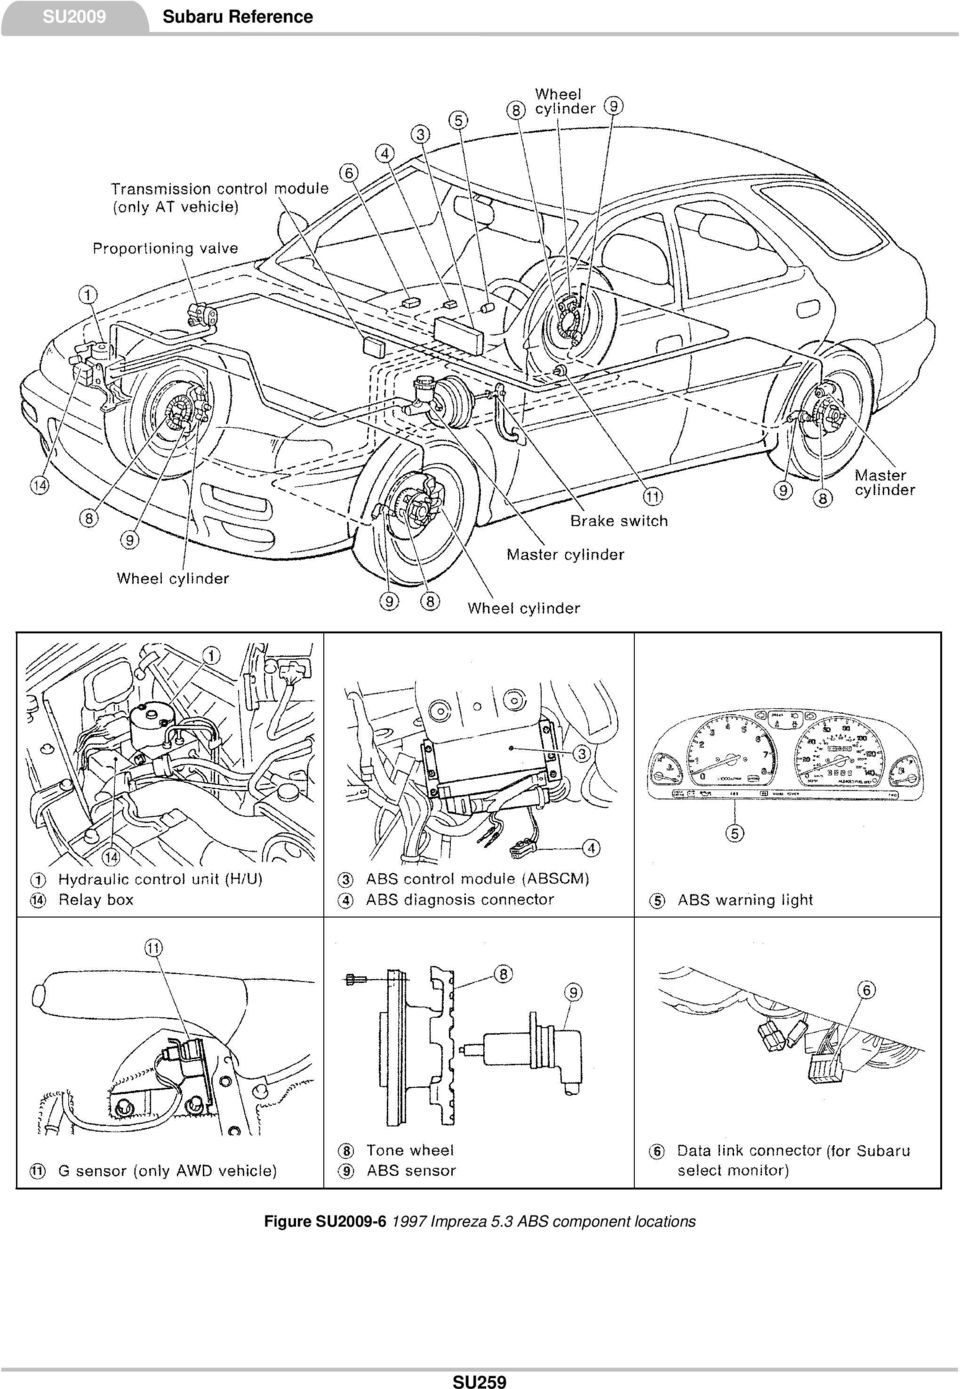 Subaru Reference This Contains The Following Information 1az Ecm Wire Diagram 2003 19 Figure Su Impreza 53i Abs Wiring Sheet 1 Of 2 Su260